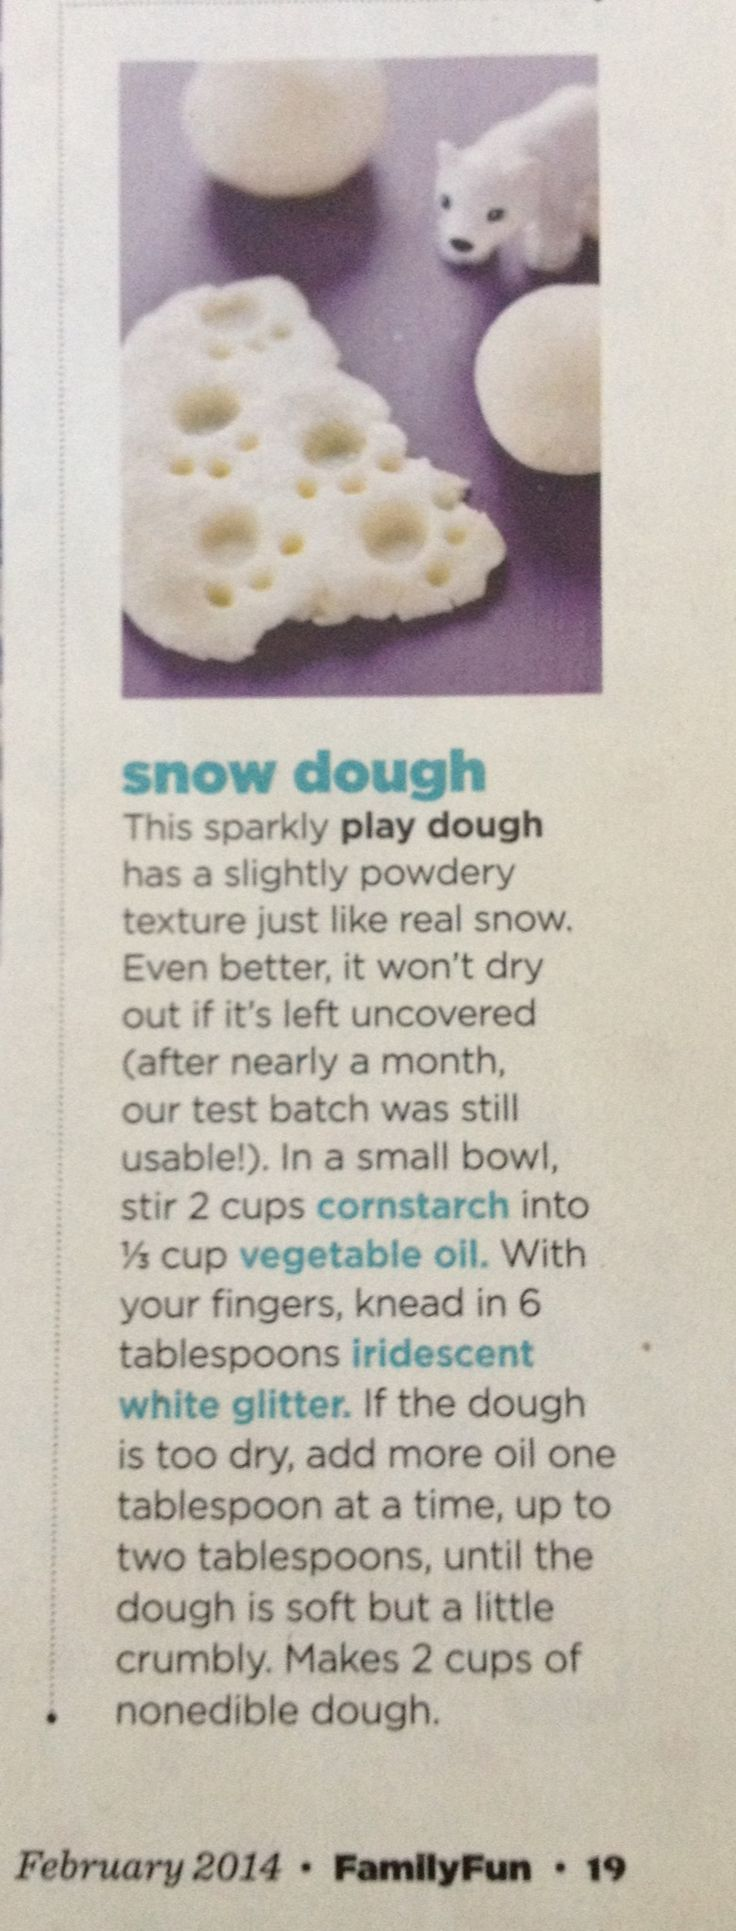 snow dough from family fun magazine february 2014 - Family Fun Magazine Halloween Crafts